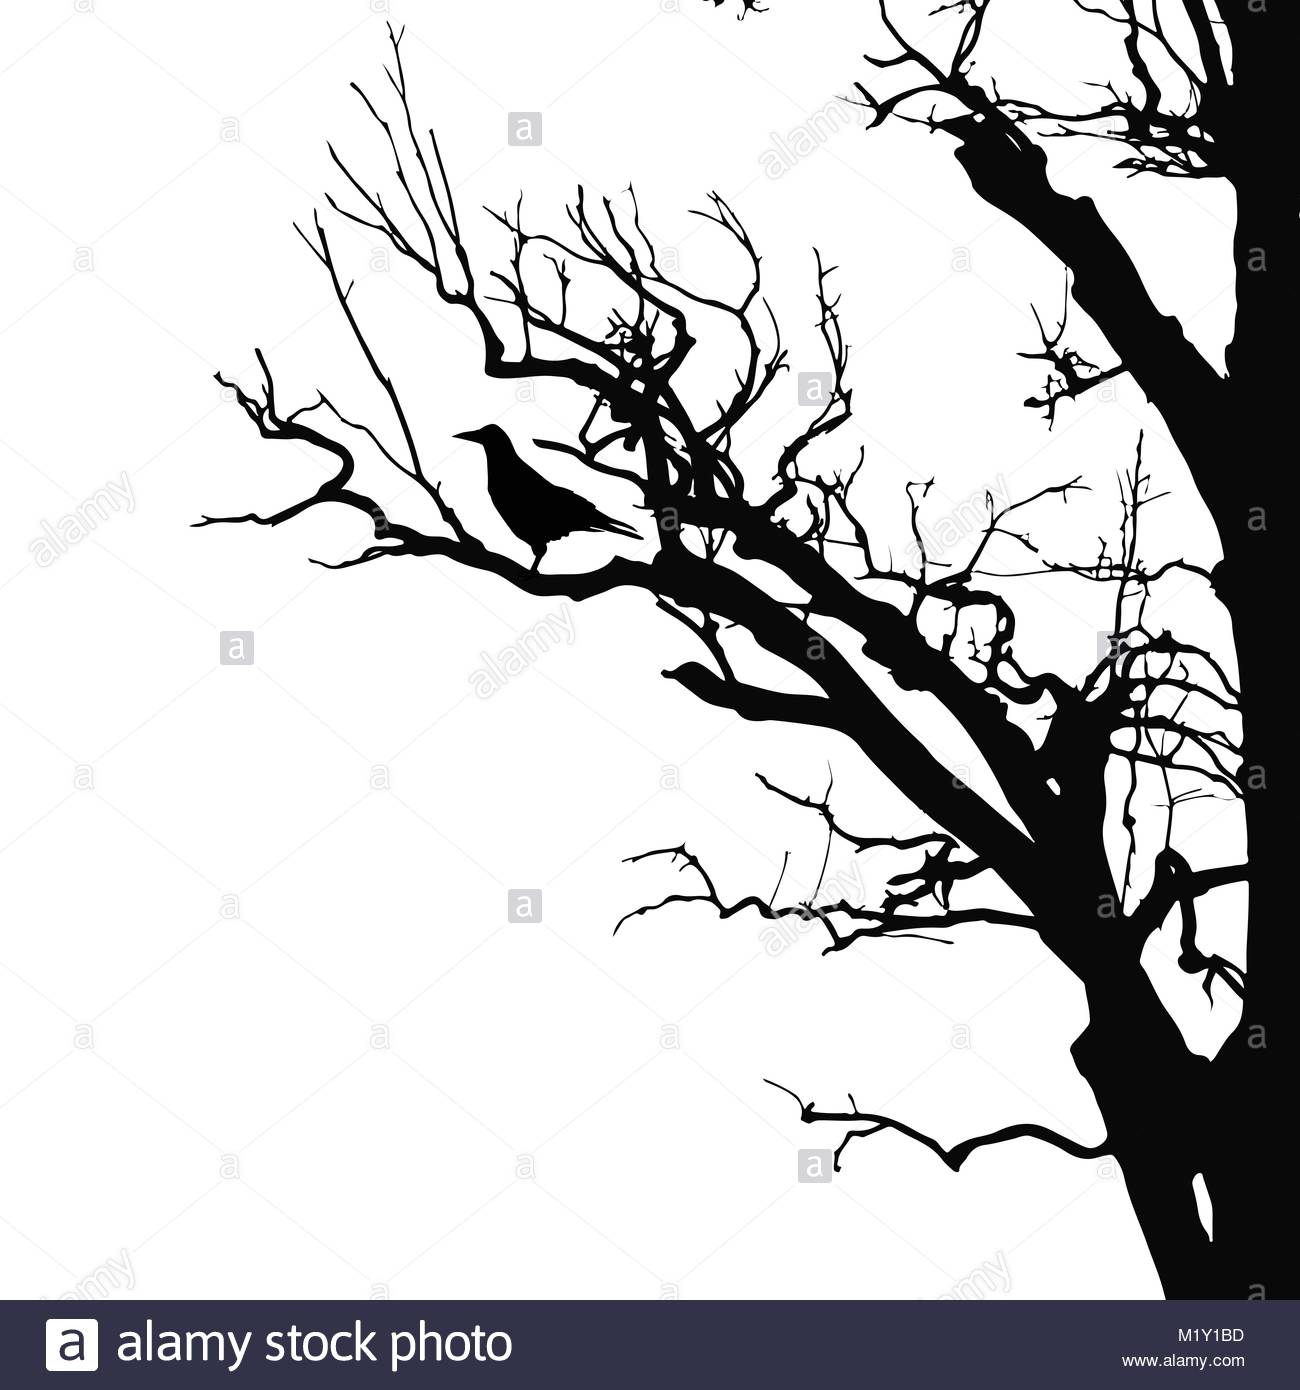 1300x1390 Realistic Vector Silhouette Of Sitting Raven On Dry Tree Branch